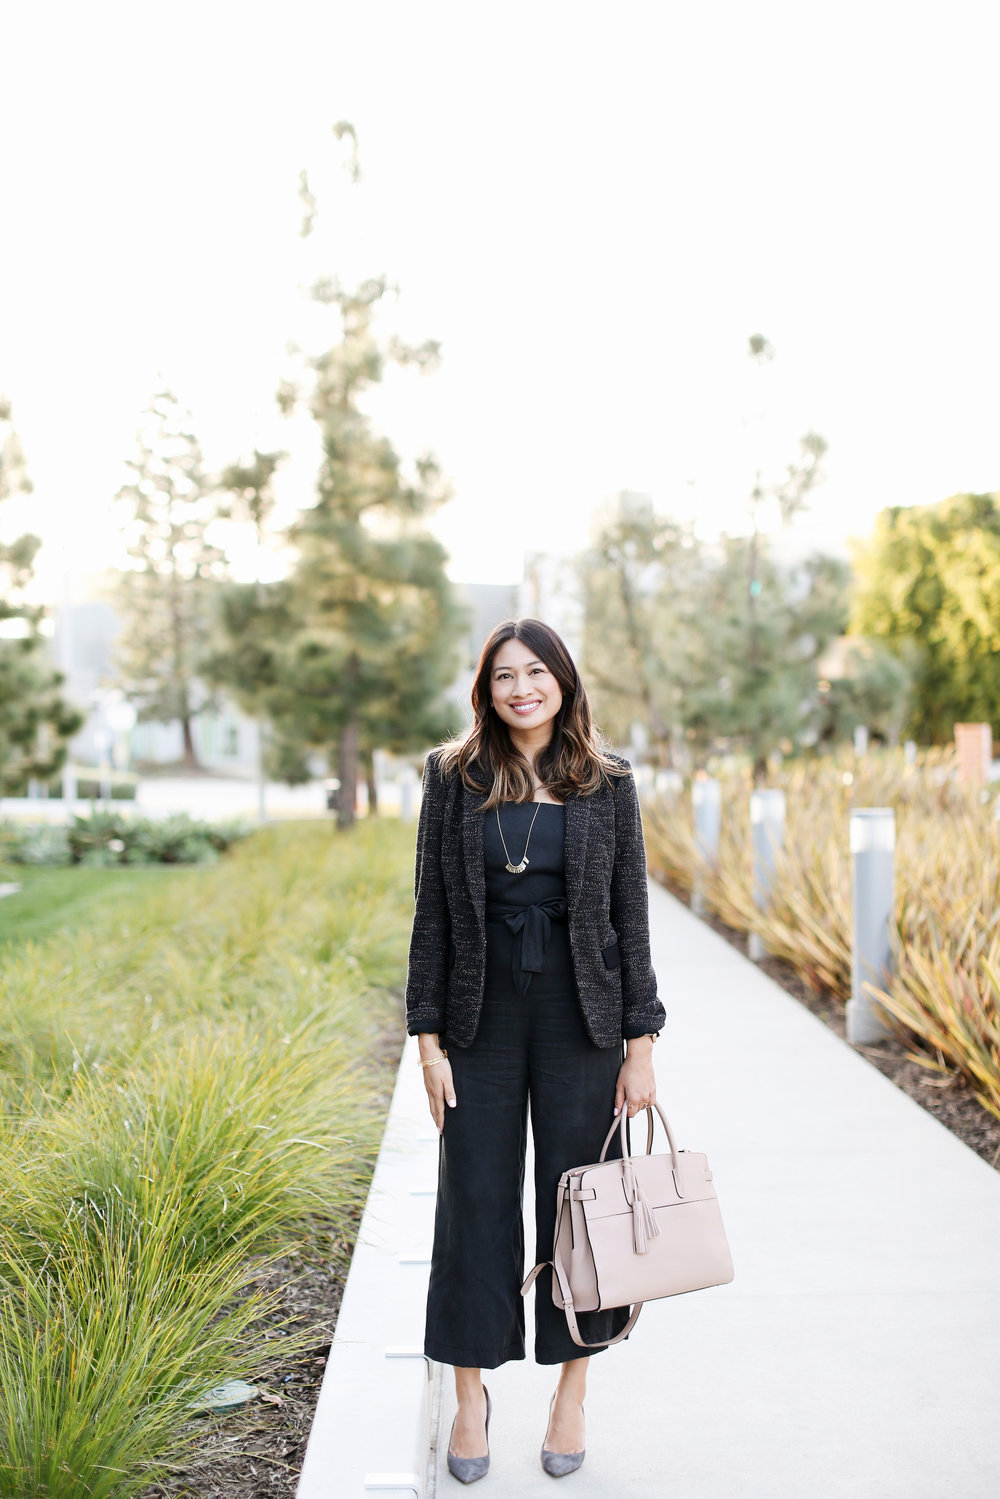 Black jumpsuit for work | A Week Of Polished & Professional Outfits With Sustainable Lifestyle Blogger Jonilyn Brown on The Good Trade